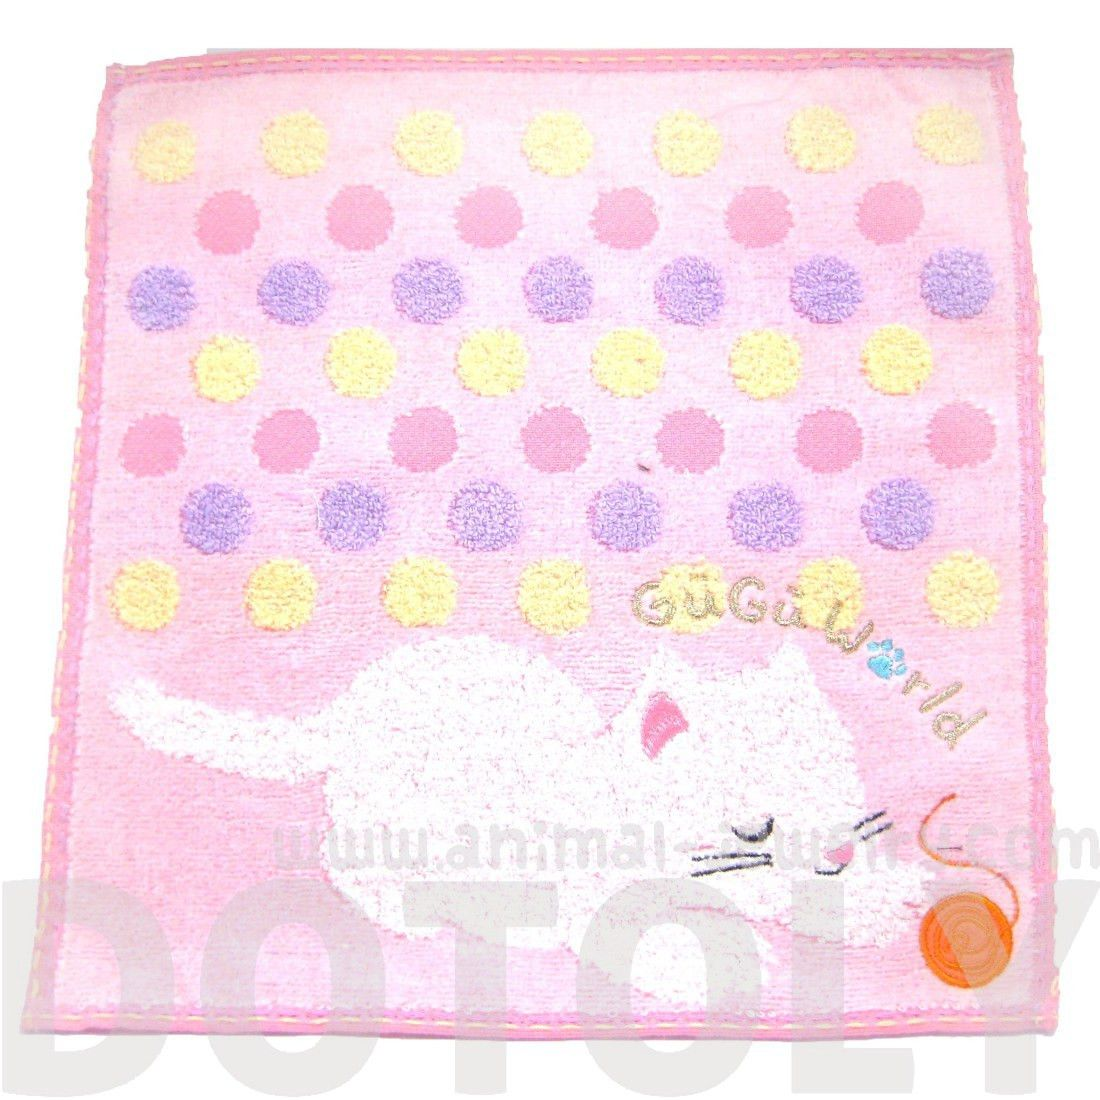 Adorable Kitty Cat Ball of Yarn Polka Dotted Handkerchief Face Towel